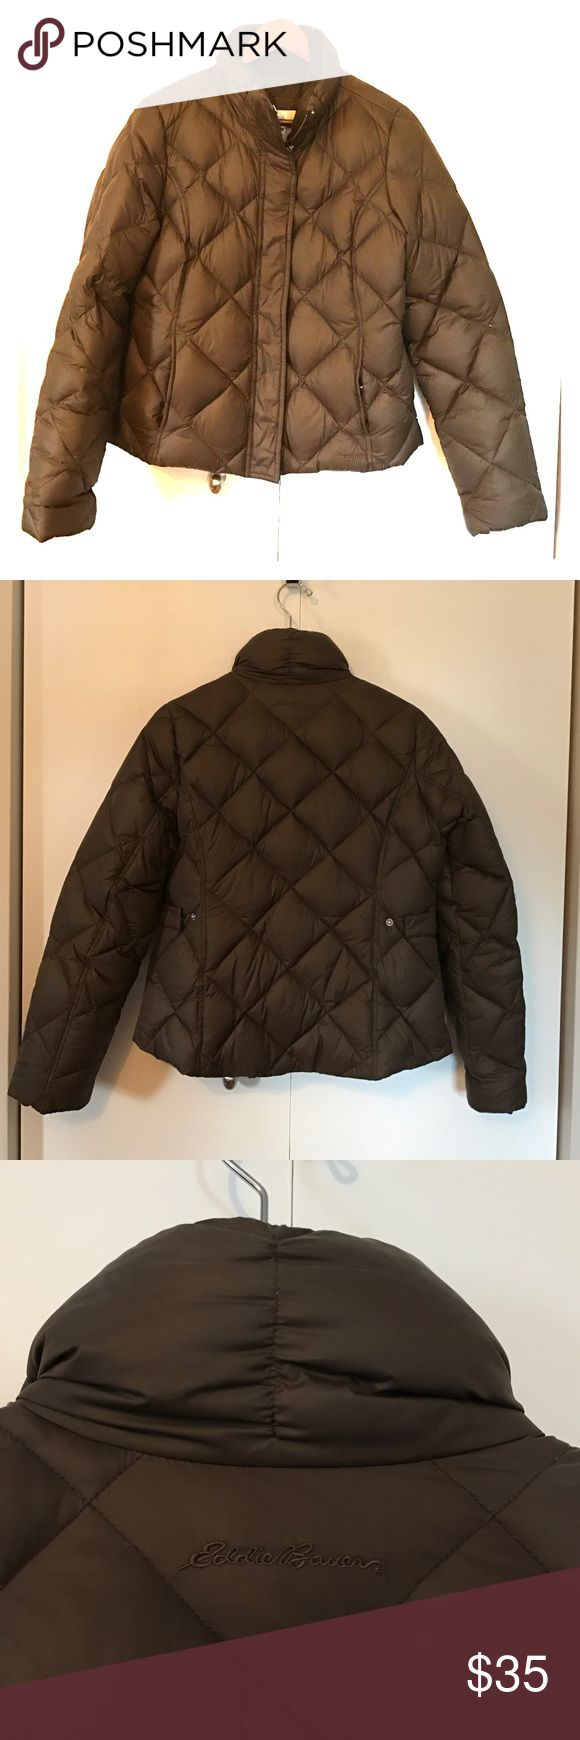 Warm! Eddie Bauer goose down coat in chocolate brn Fabulously warm goose down coat with 700 fill power. Like new! 24 in from shoulder to hem. Eddie Bauer Jackets & Coats Puffers